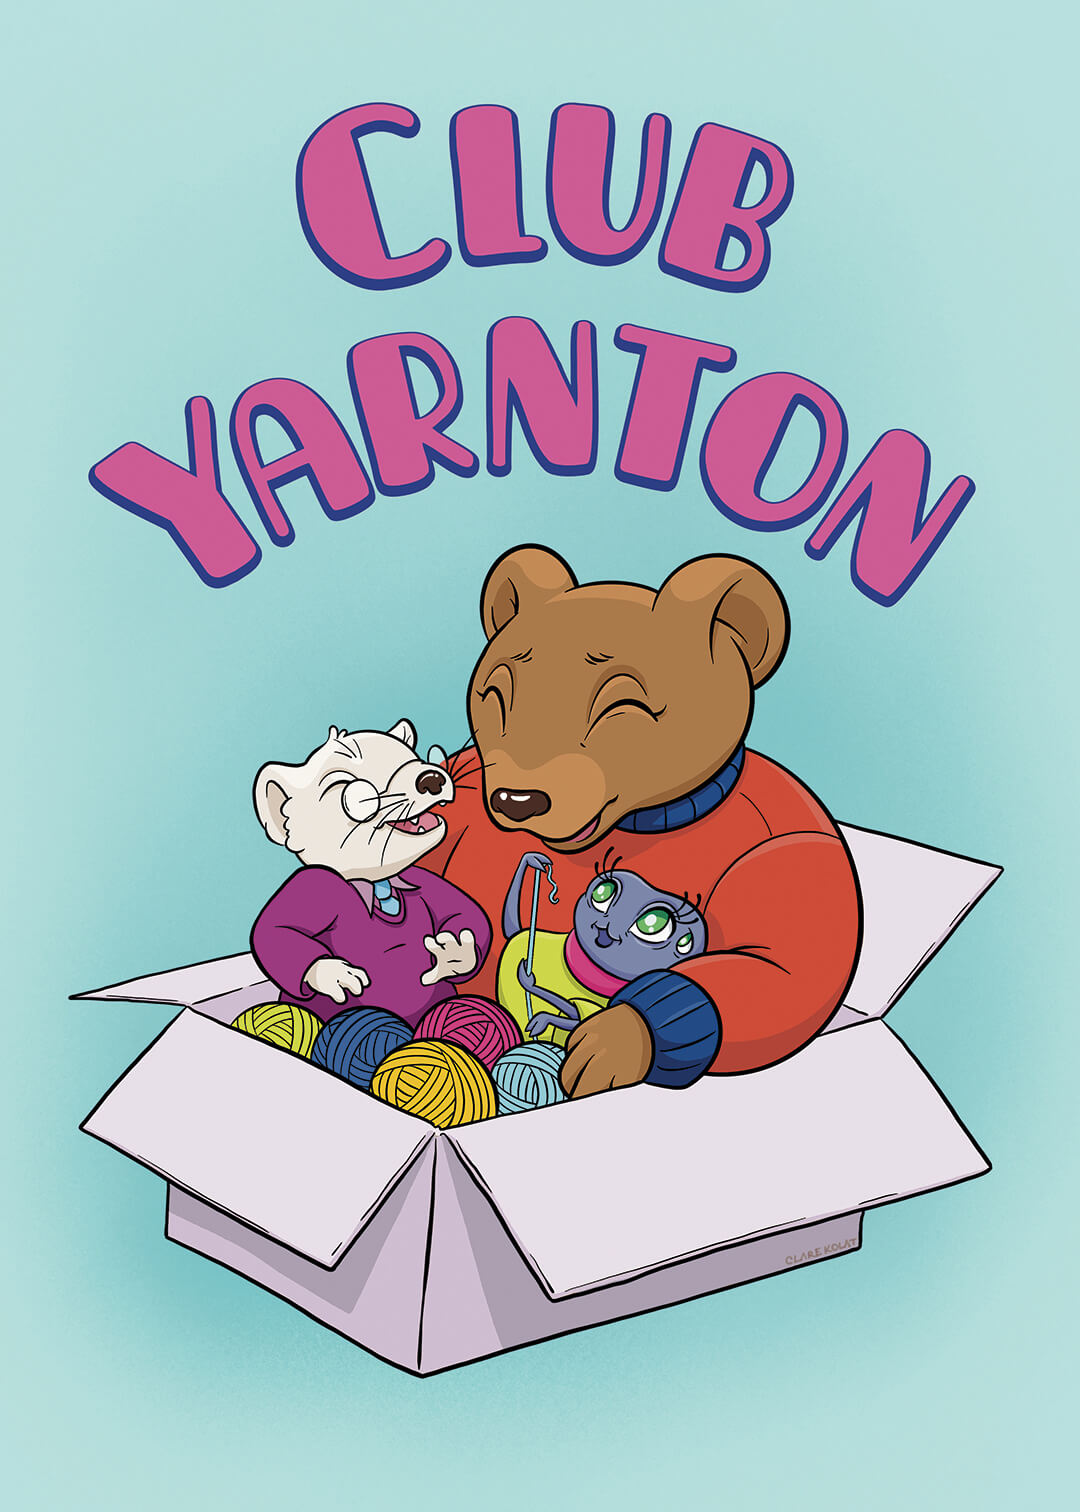 Club Yarnton - Small Box